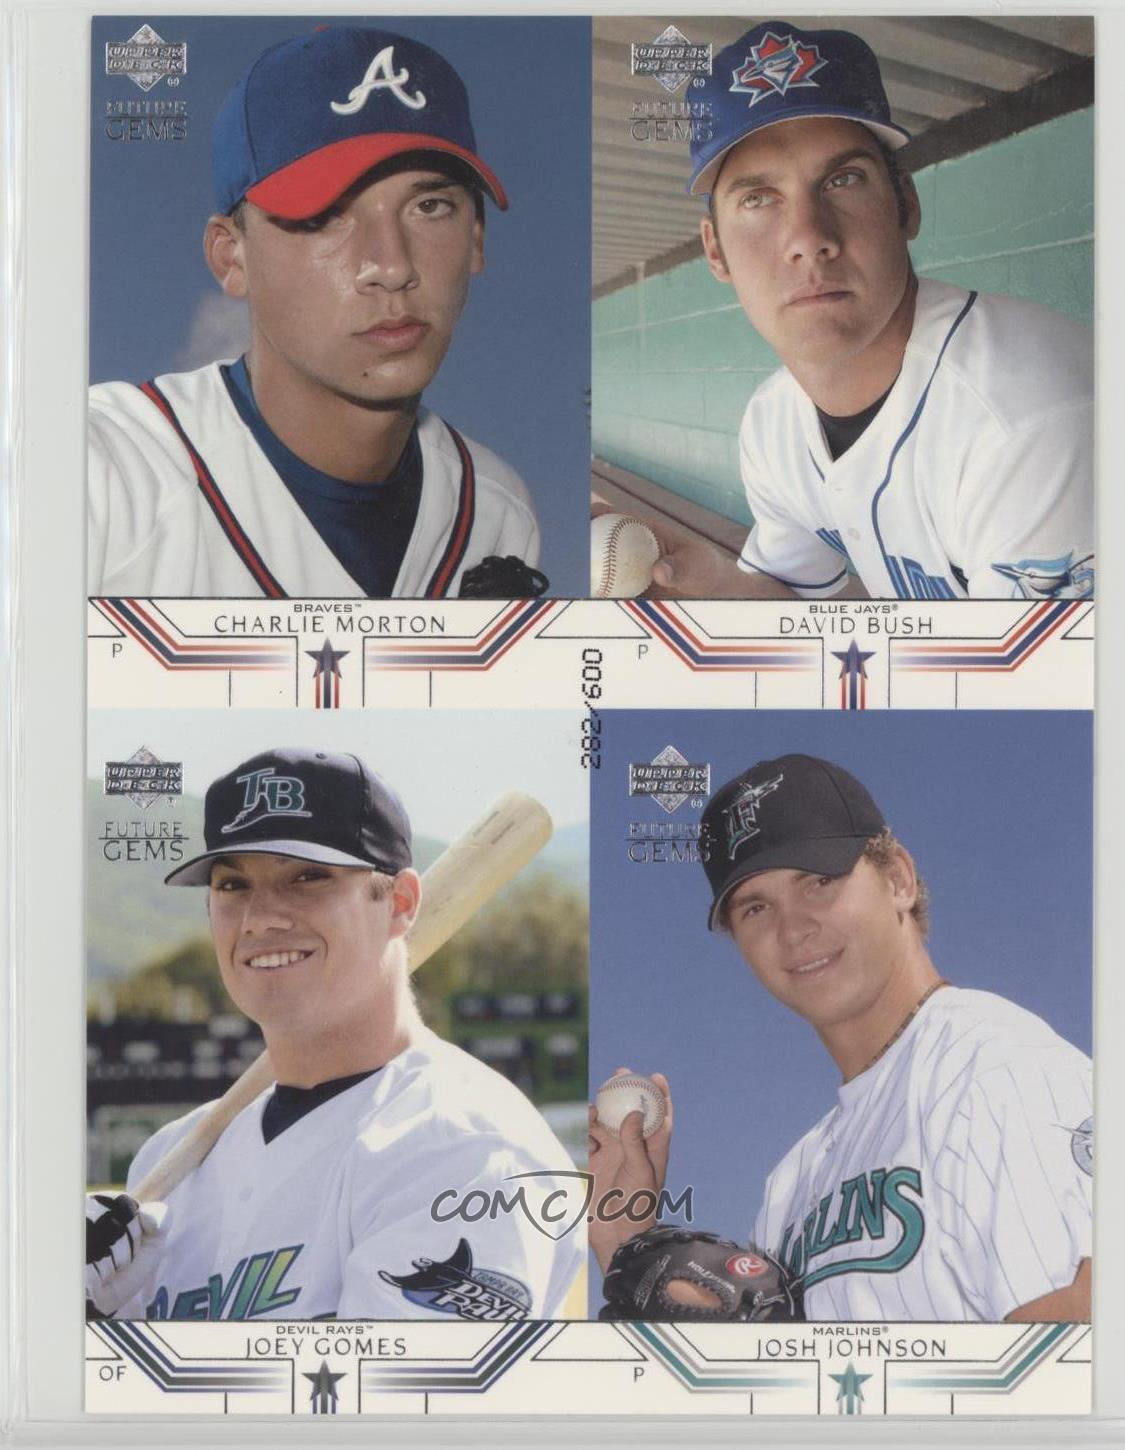 2002 upper deck prospect premieres box toppers quads mbgj charlie morton david bush joey gomes josh johnson 600 charlie morton david bush joey gomes